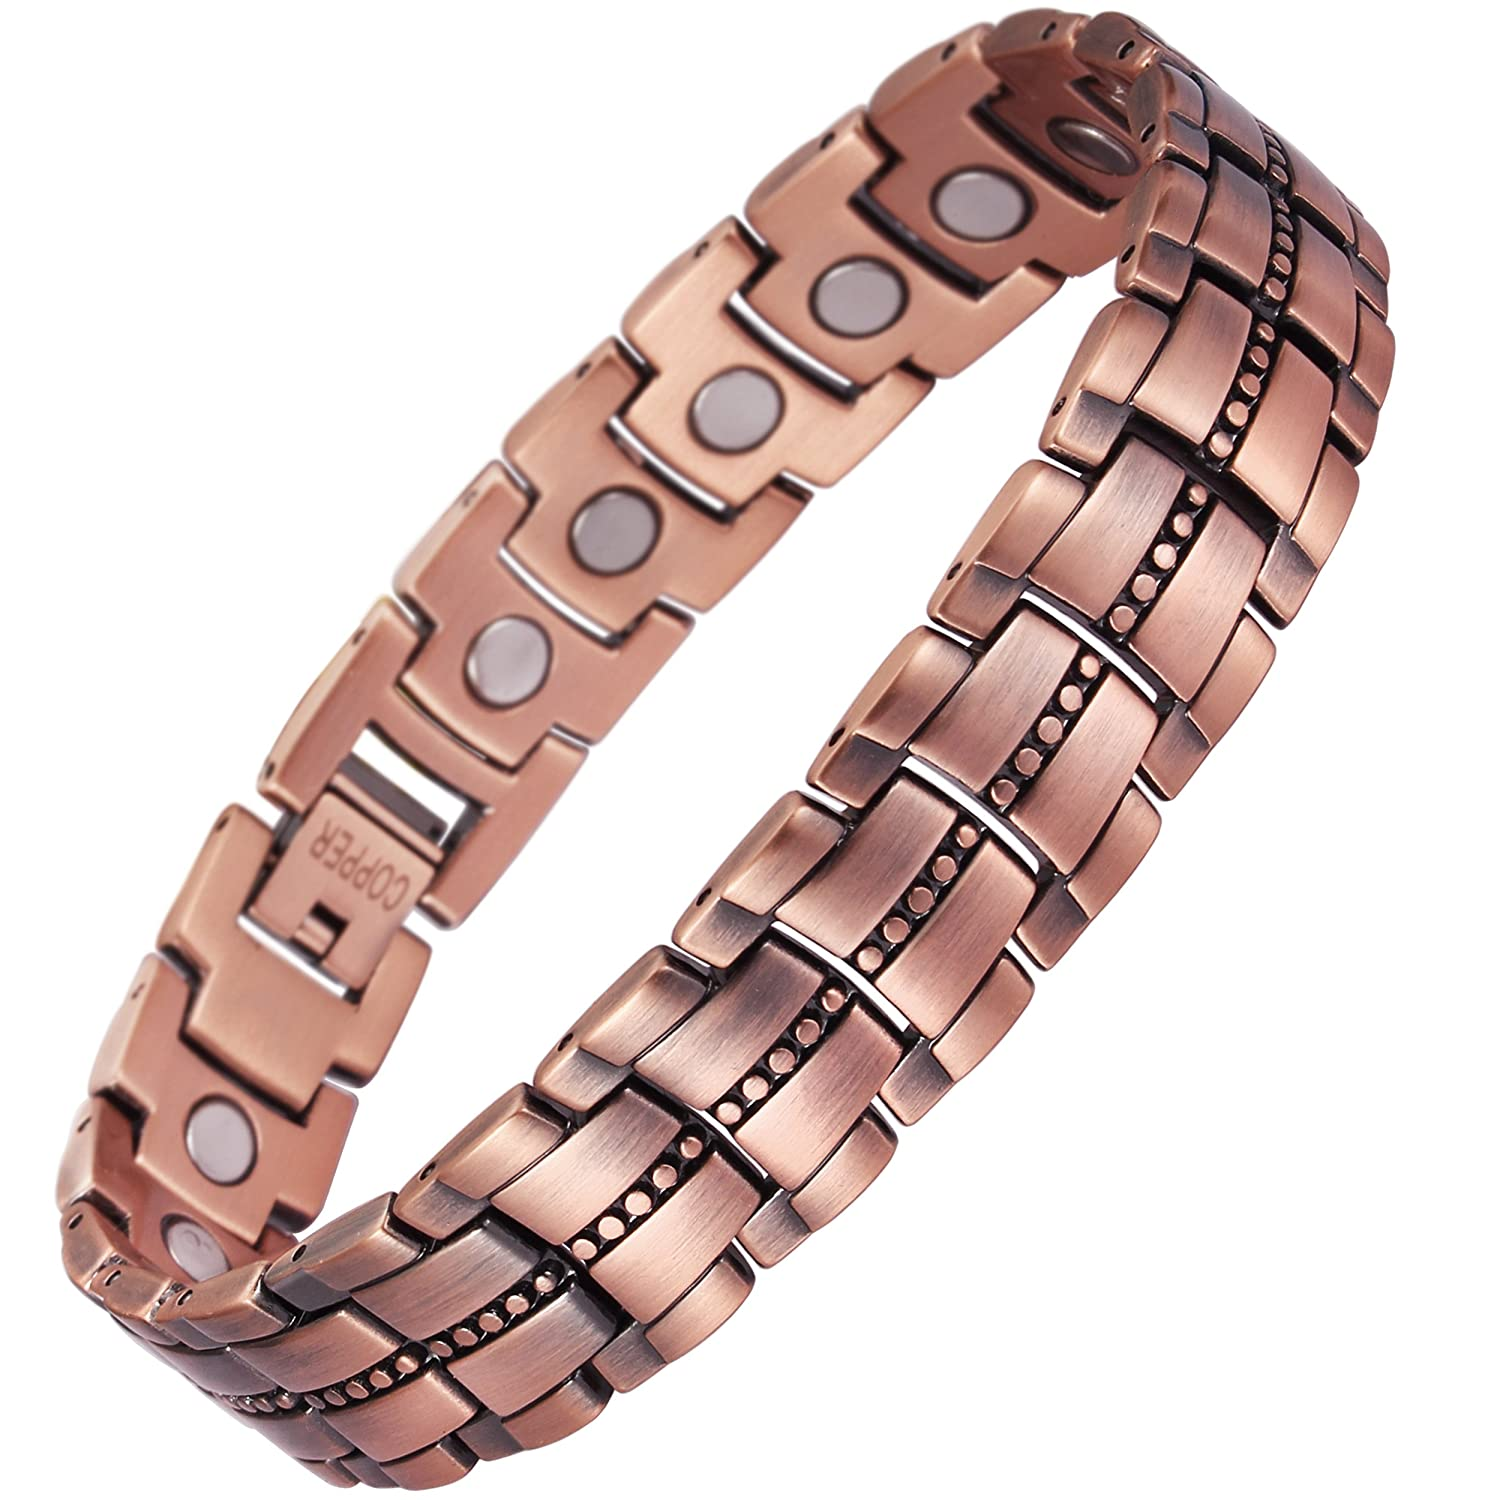 VITEROU Mens 99.95% Pure Copper Magnetic Therapy Bracelet with High Powered Magnets for Arthritis Pain Relief,3500 Gauss,8.5-9.8 Inches USTRCOR-034